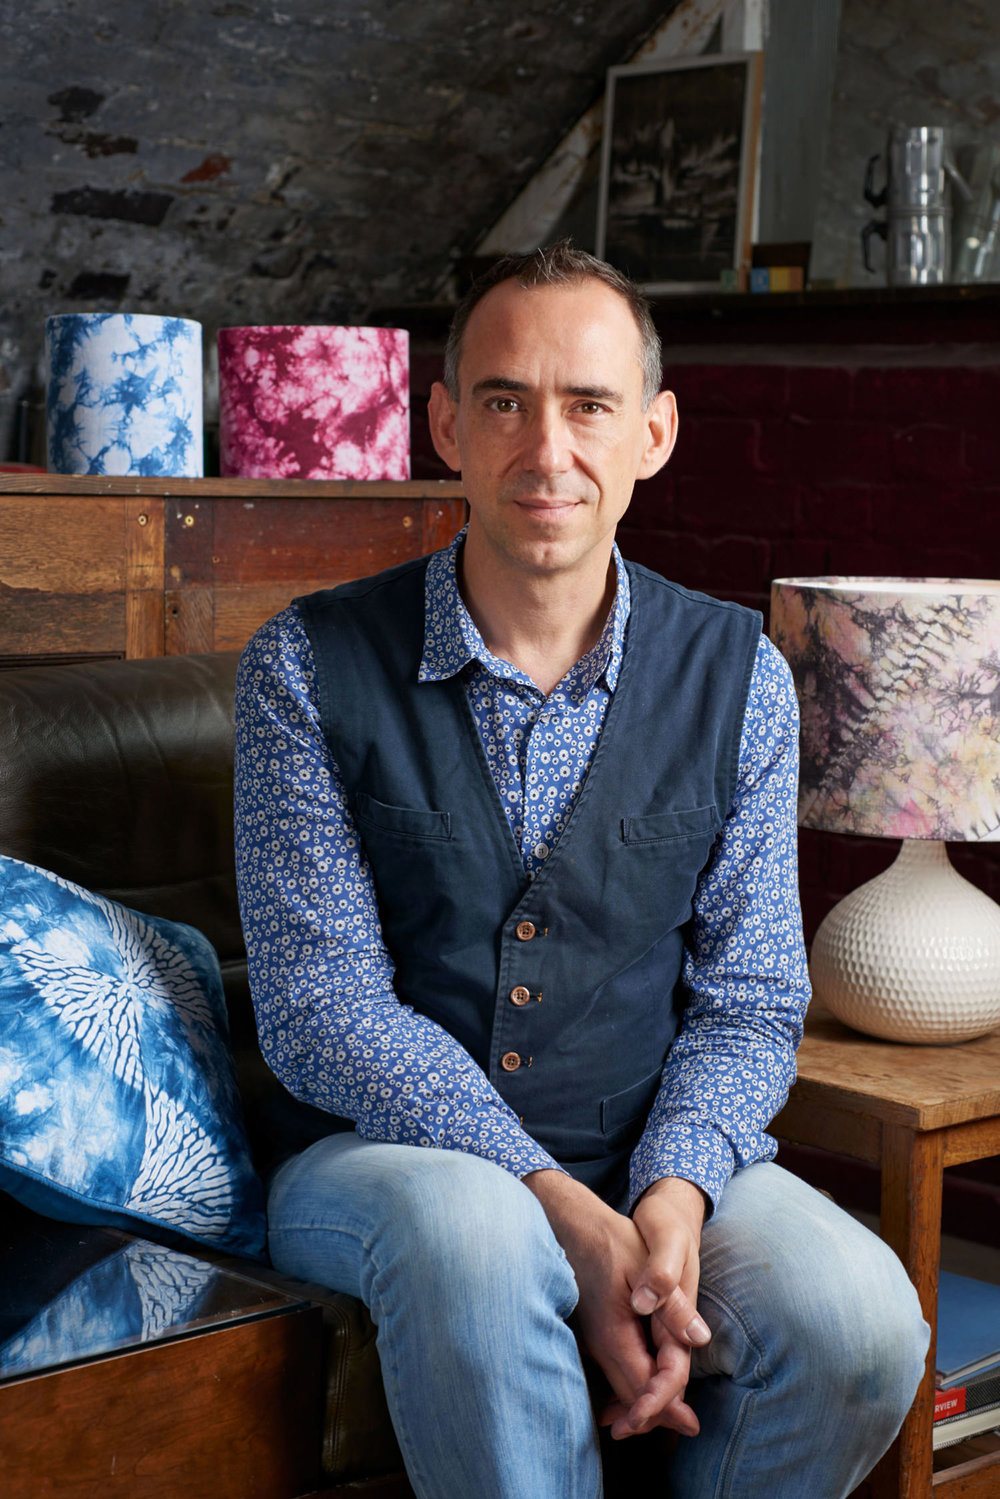 Your organiser, Rob Jones - I've been a fan of Bryan's work since 2012 when I first came across his amazing blog and did his class in 2014. Thanks to Bryan's encouragement and support I changed careers to become a full-time textiles designer working with Japanese indigo and natural plant dyes, making my own Japanese inspired textiles using Shibori, Katazome stencilling and Sashiko embroidery. I've been practising Shibori for seven years now and I teach Beginner's classes in the UK, working out of my studio under an old railway arch in Hackney. I take a lot of my inspiration from geometry and intersections and I enjoy taking traditional patterns, breaking them and re-piecing them using patchwork. I love Japan and working with Bryan is always a pleasure as his knowledge of Japanese textiles and culture is extensive. I'm looking forward to working with him again on this class. It's still by far the best trip I've ever made!